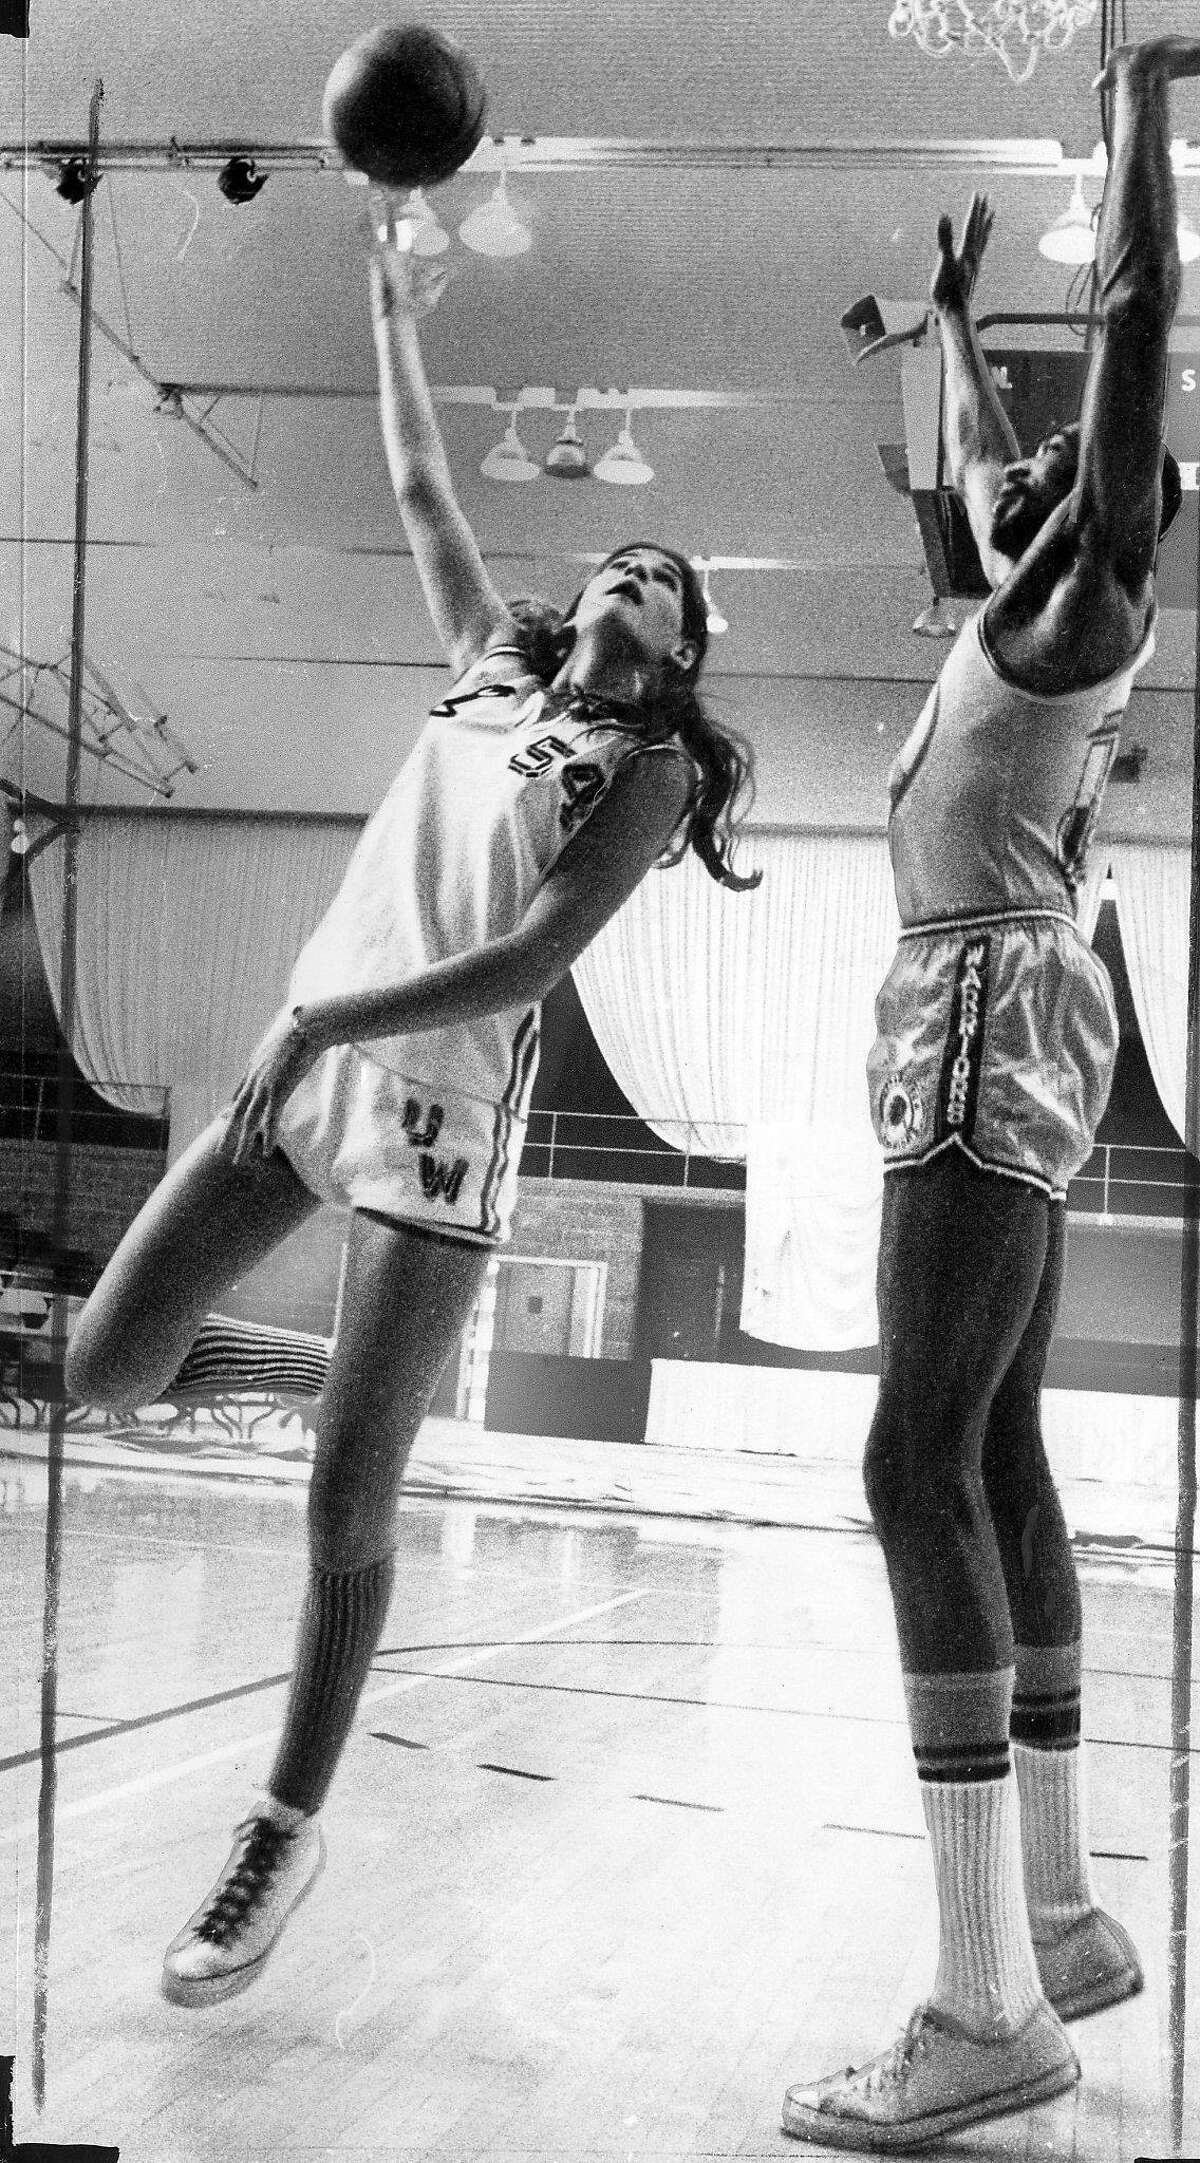 Denise Long, drafted by the Warriors in the 13th round. The NBA disallowed the pick, shown here shooting over Nate Thurmond, June 6, 1969 Photo ran 06/07/1969, p. 36